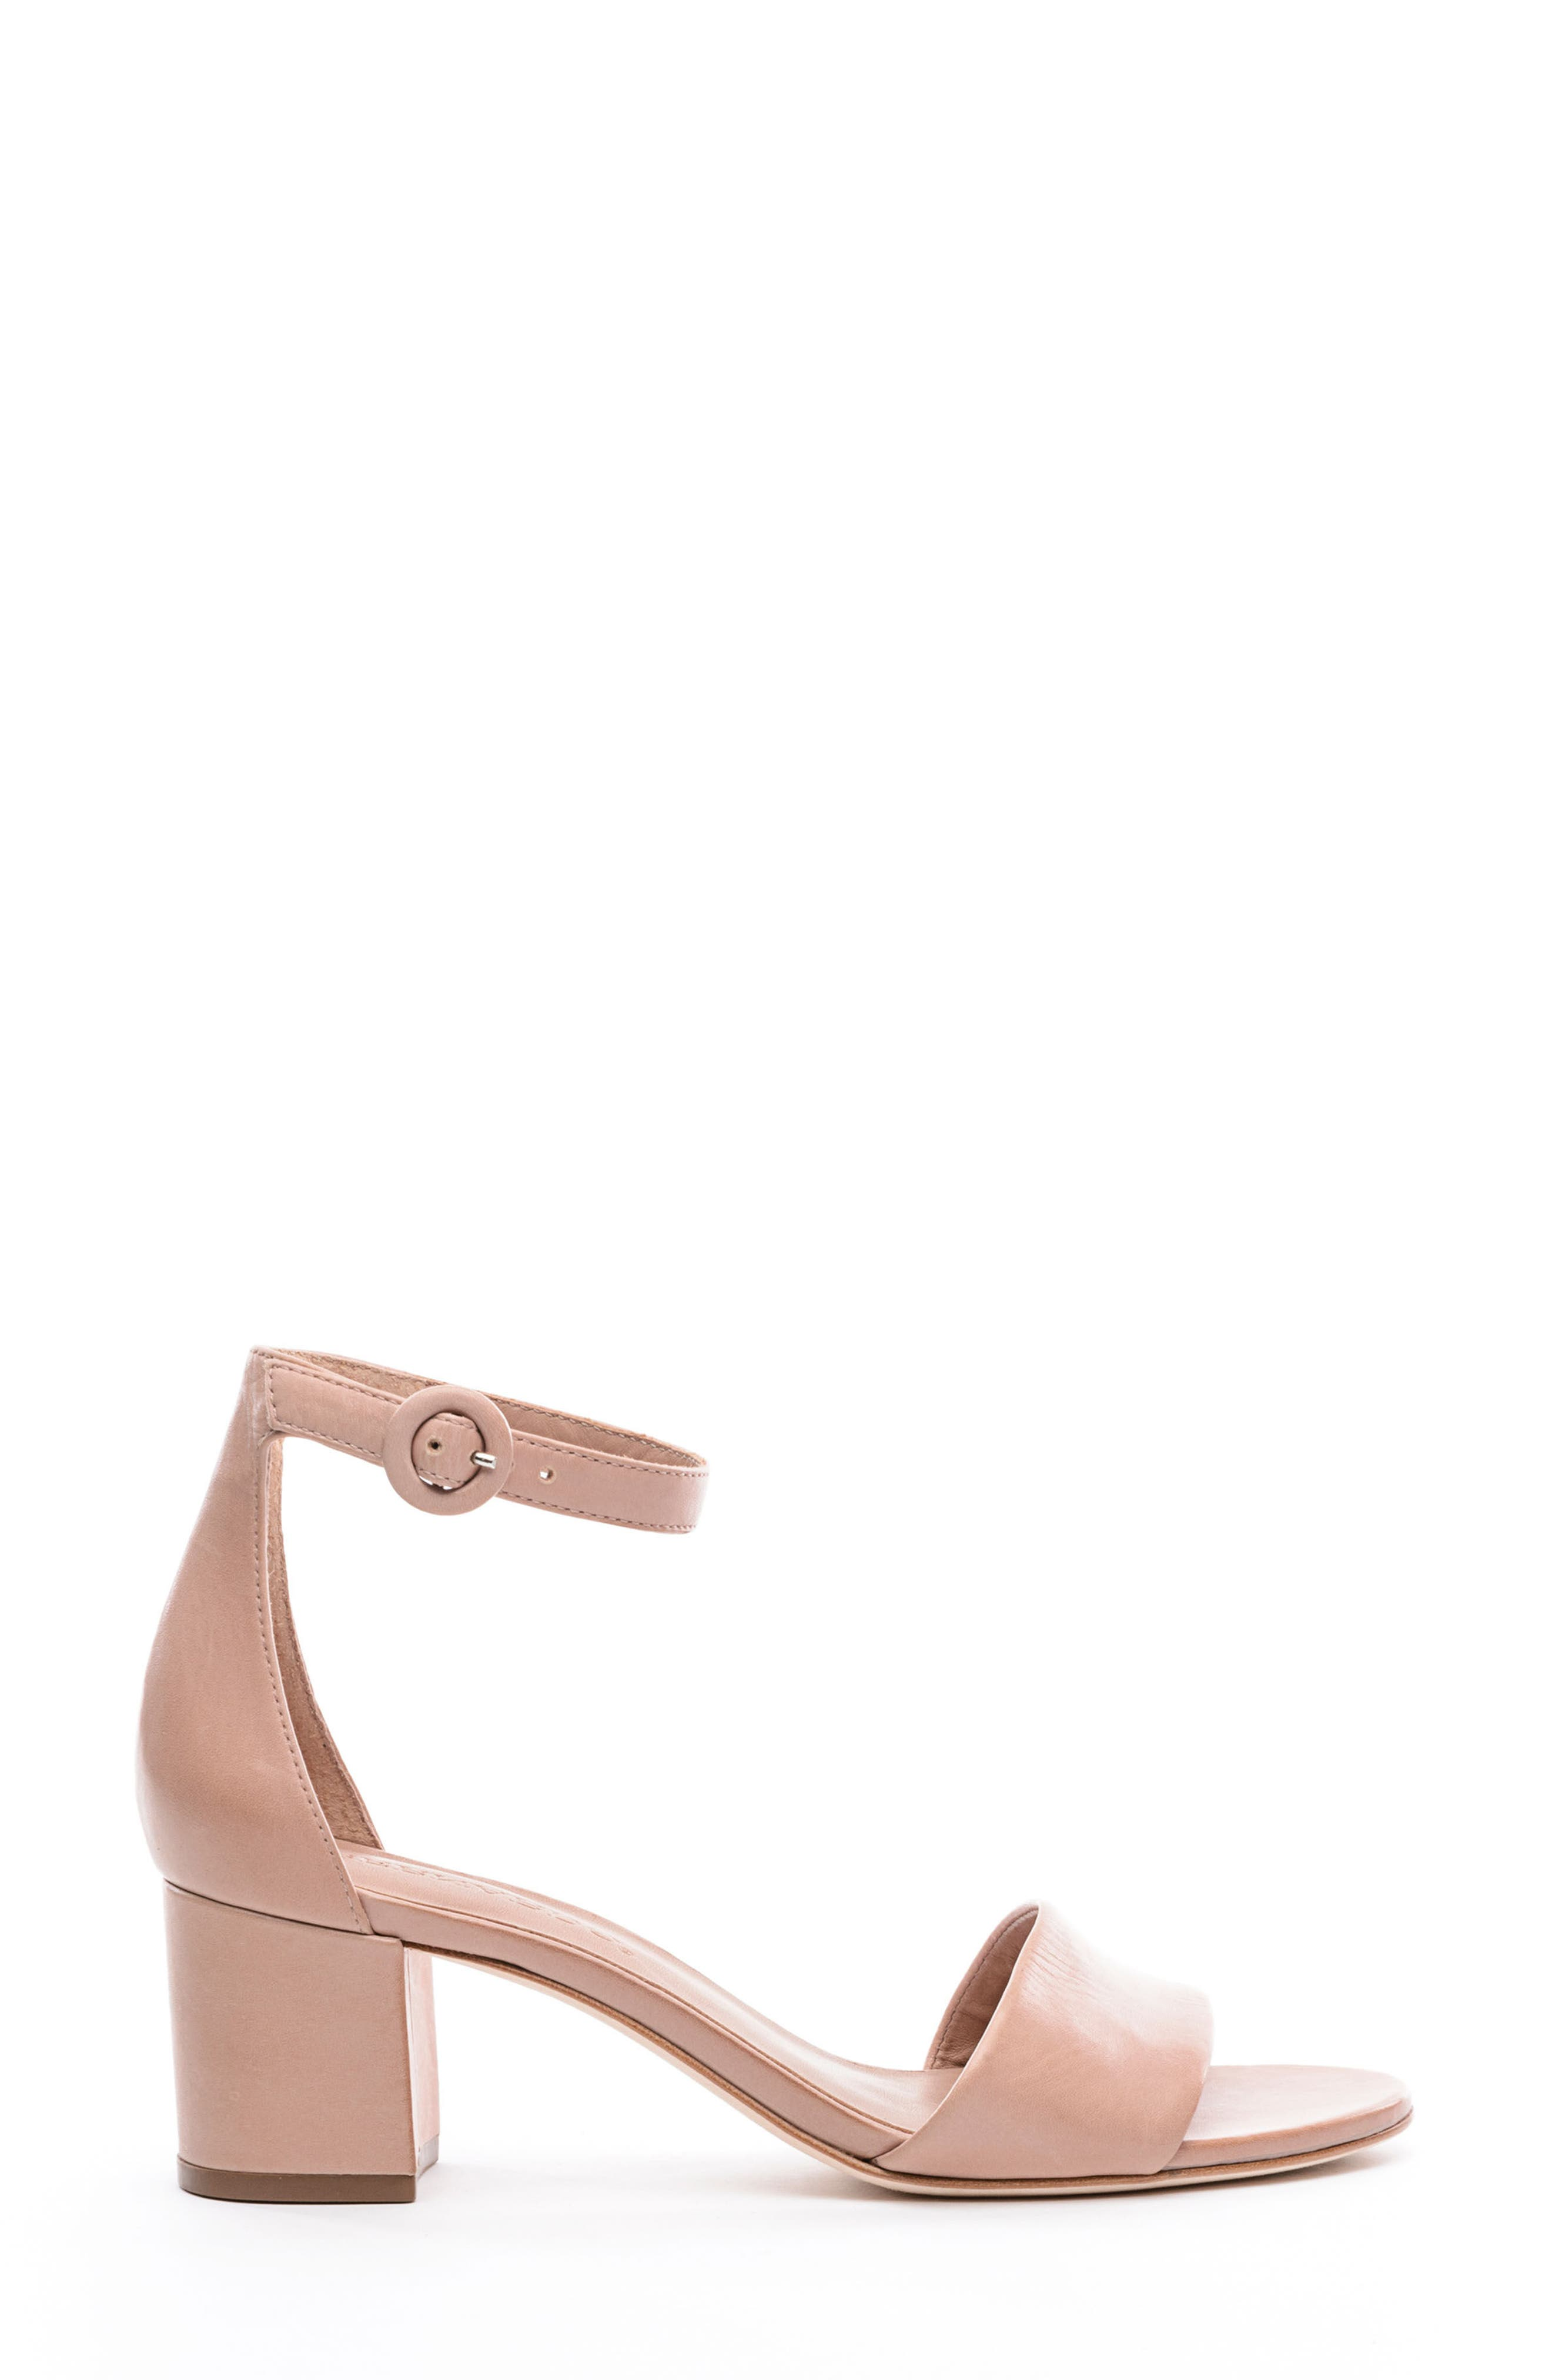 BERNARDO, Belinda Ankle Strap Sandal, Alternate thumbnail 3, color, BLUSH LEATHER